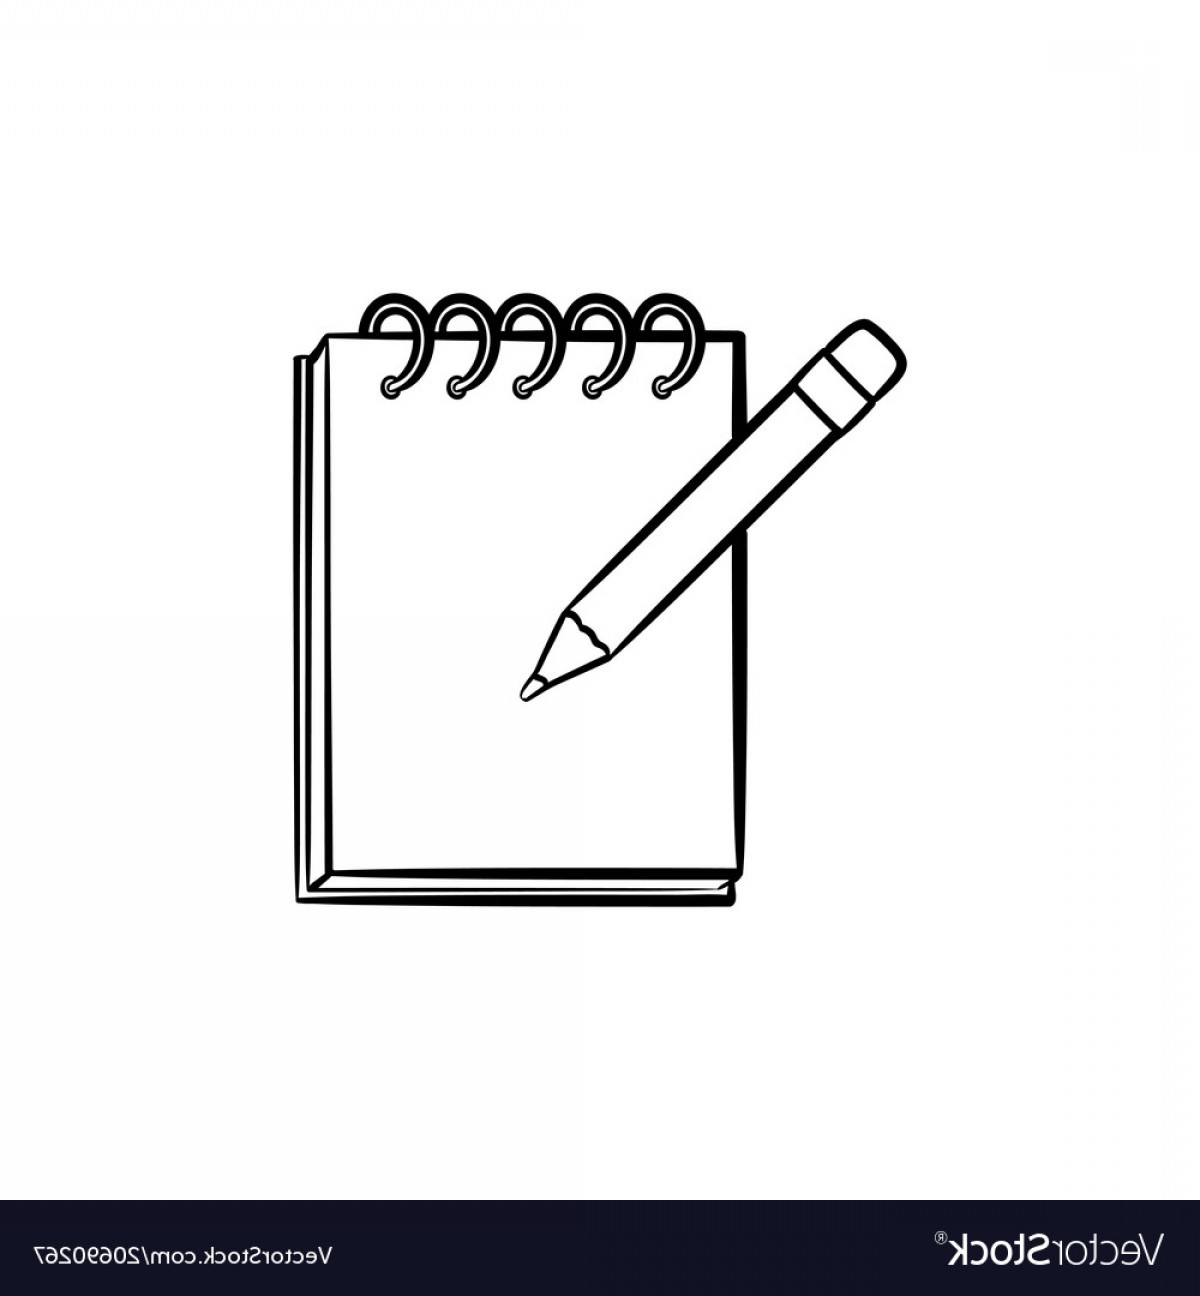 Notepad Writing Hand Vector: Pencil And Notepad With Binders Hand Drawn Icon Vector